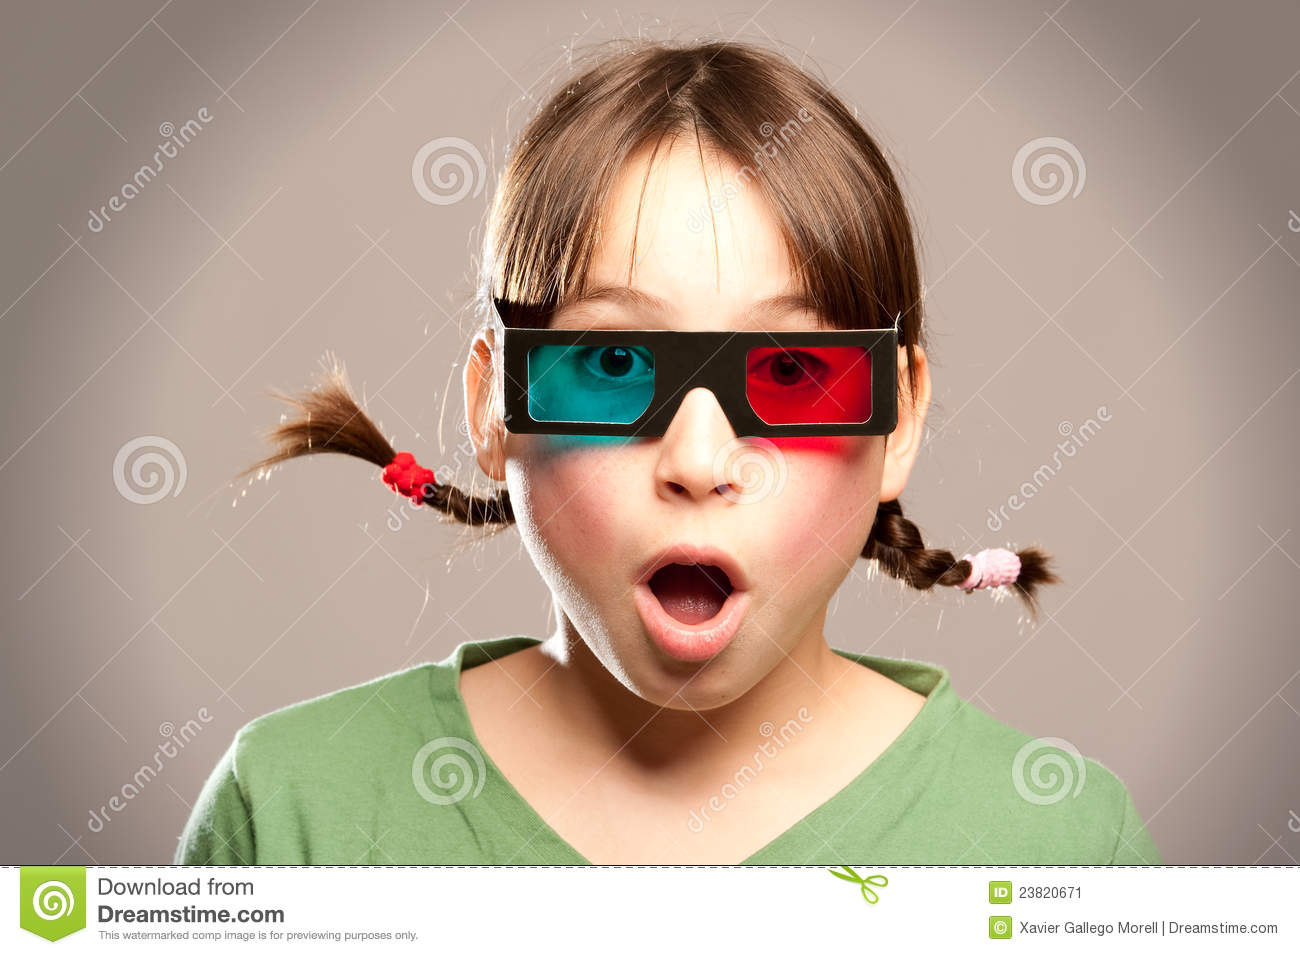 Young Girl Wearing 3d Glasses Stock Image - Image: 23820671